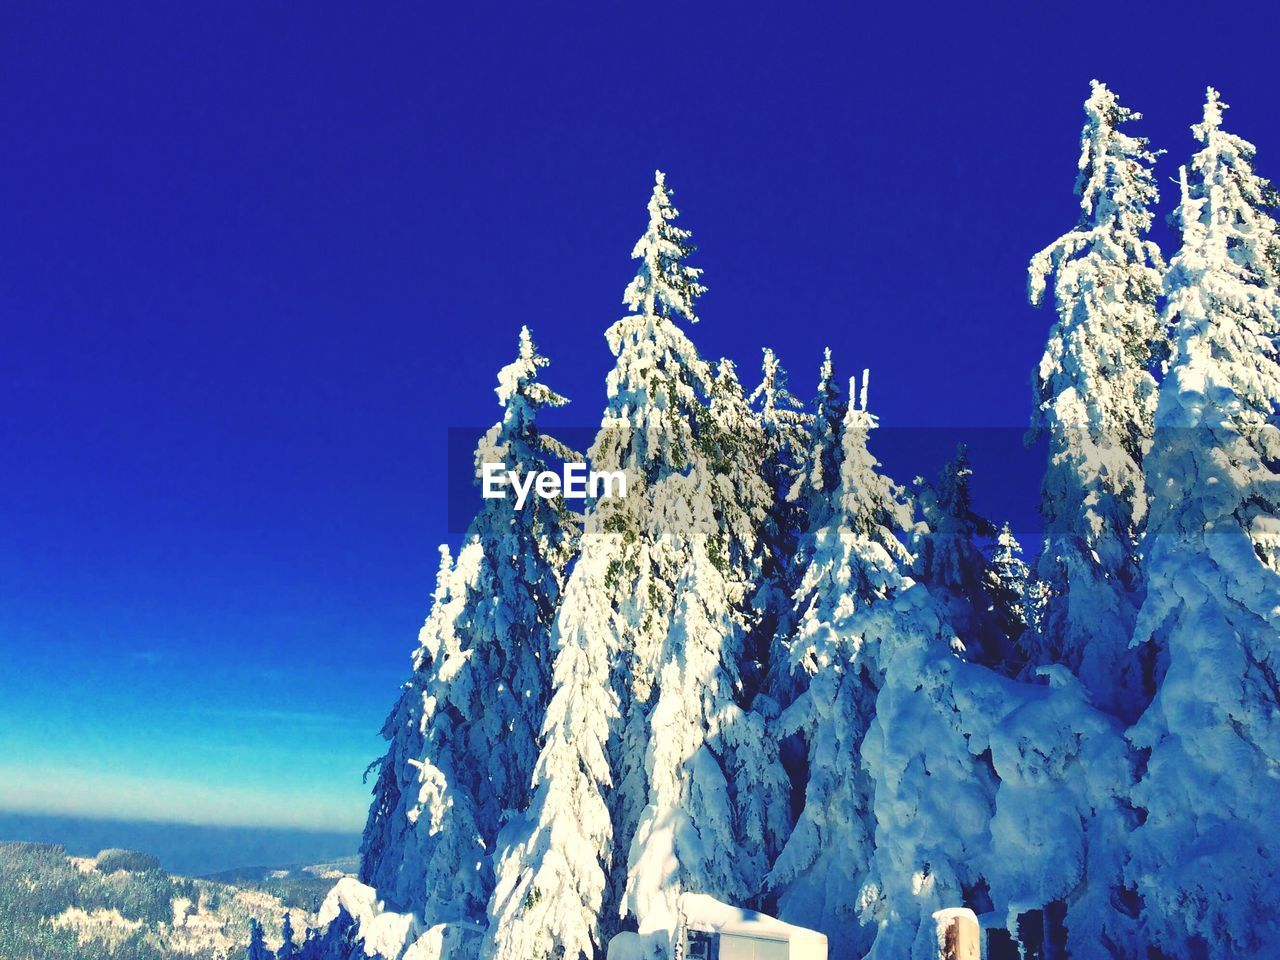 sky, blue, cold temperature, snow, winter, beauty in nature, nature, clear sky, day, tranquility, no people, tranquil scene, low angle view, scenics - nature, sunlight, mountain, copy space, outdoors, frozen, snowcapped mountain, mountain peak